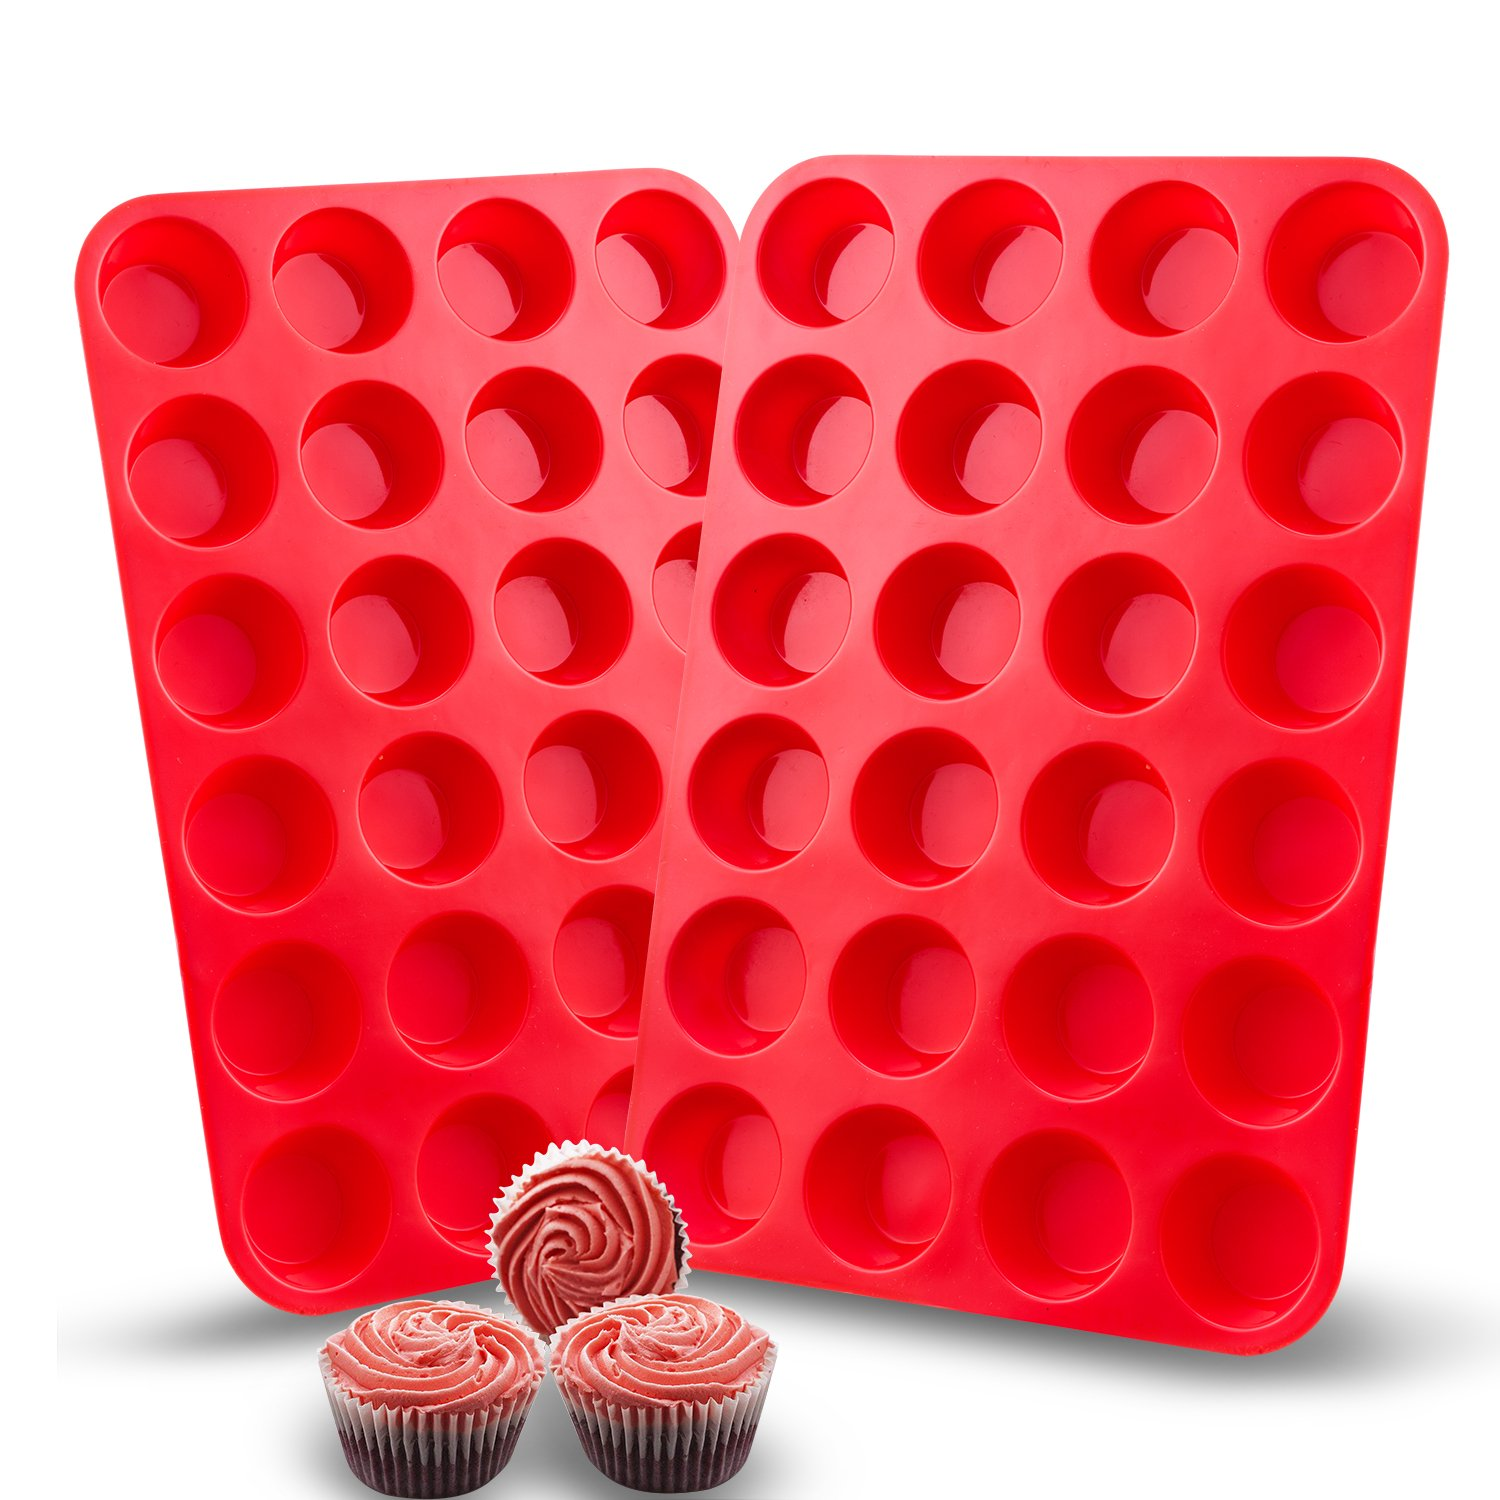 Auxcuiso 24 Cups Mini Muffin Molds Silicone Non Stick Set of 2 Packs Red AY-020-011